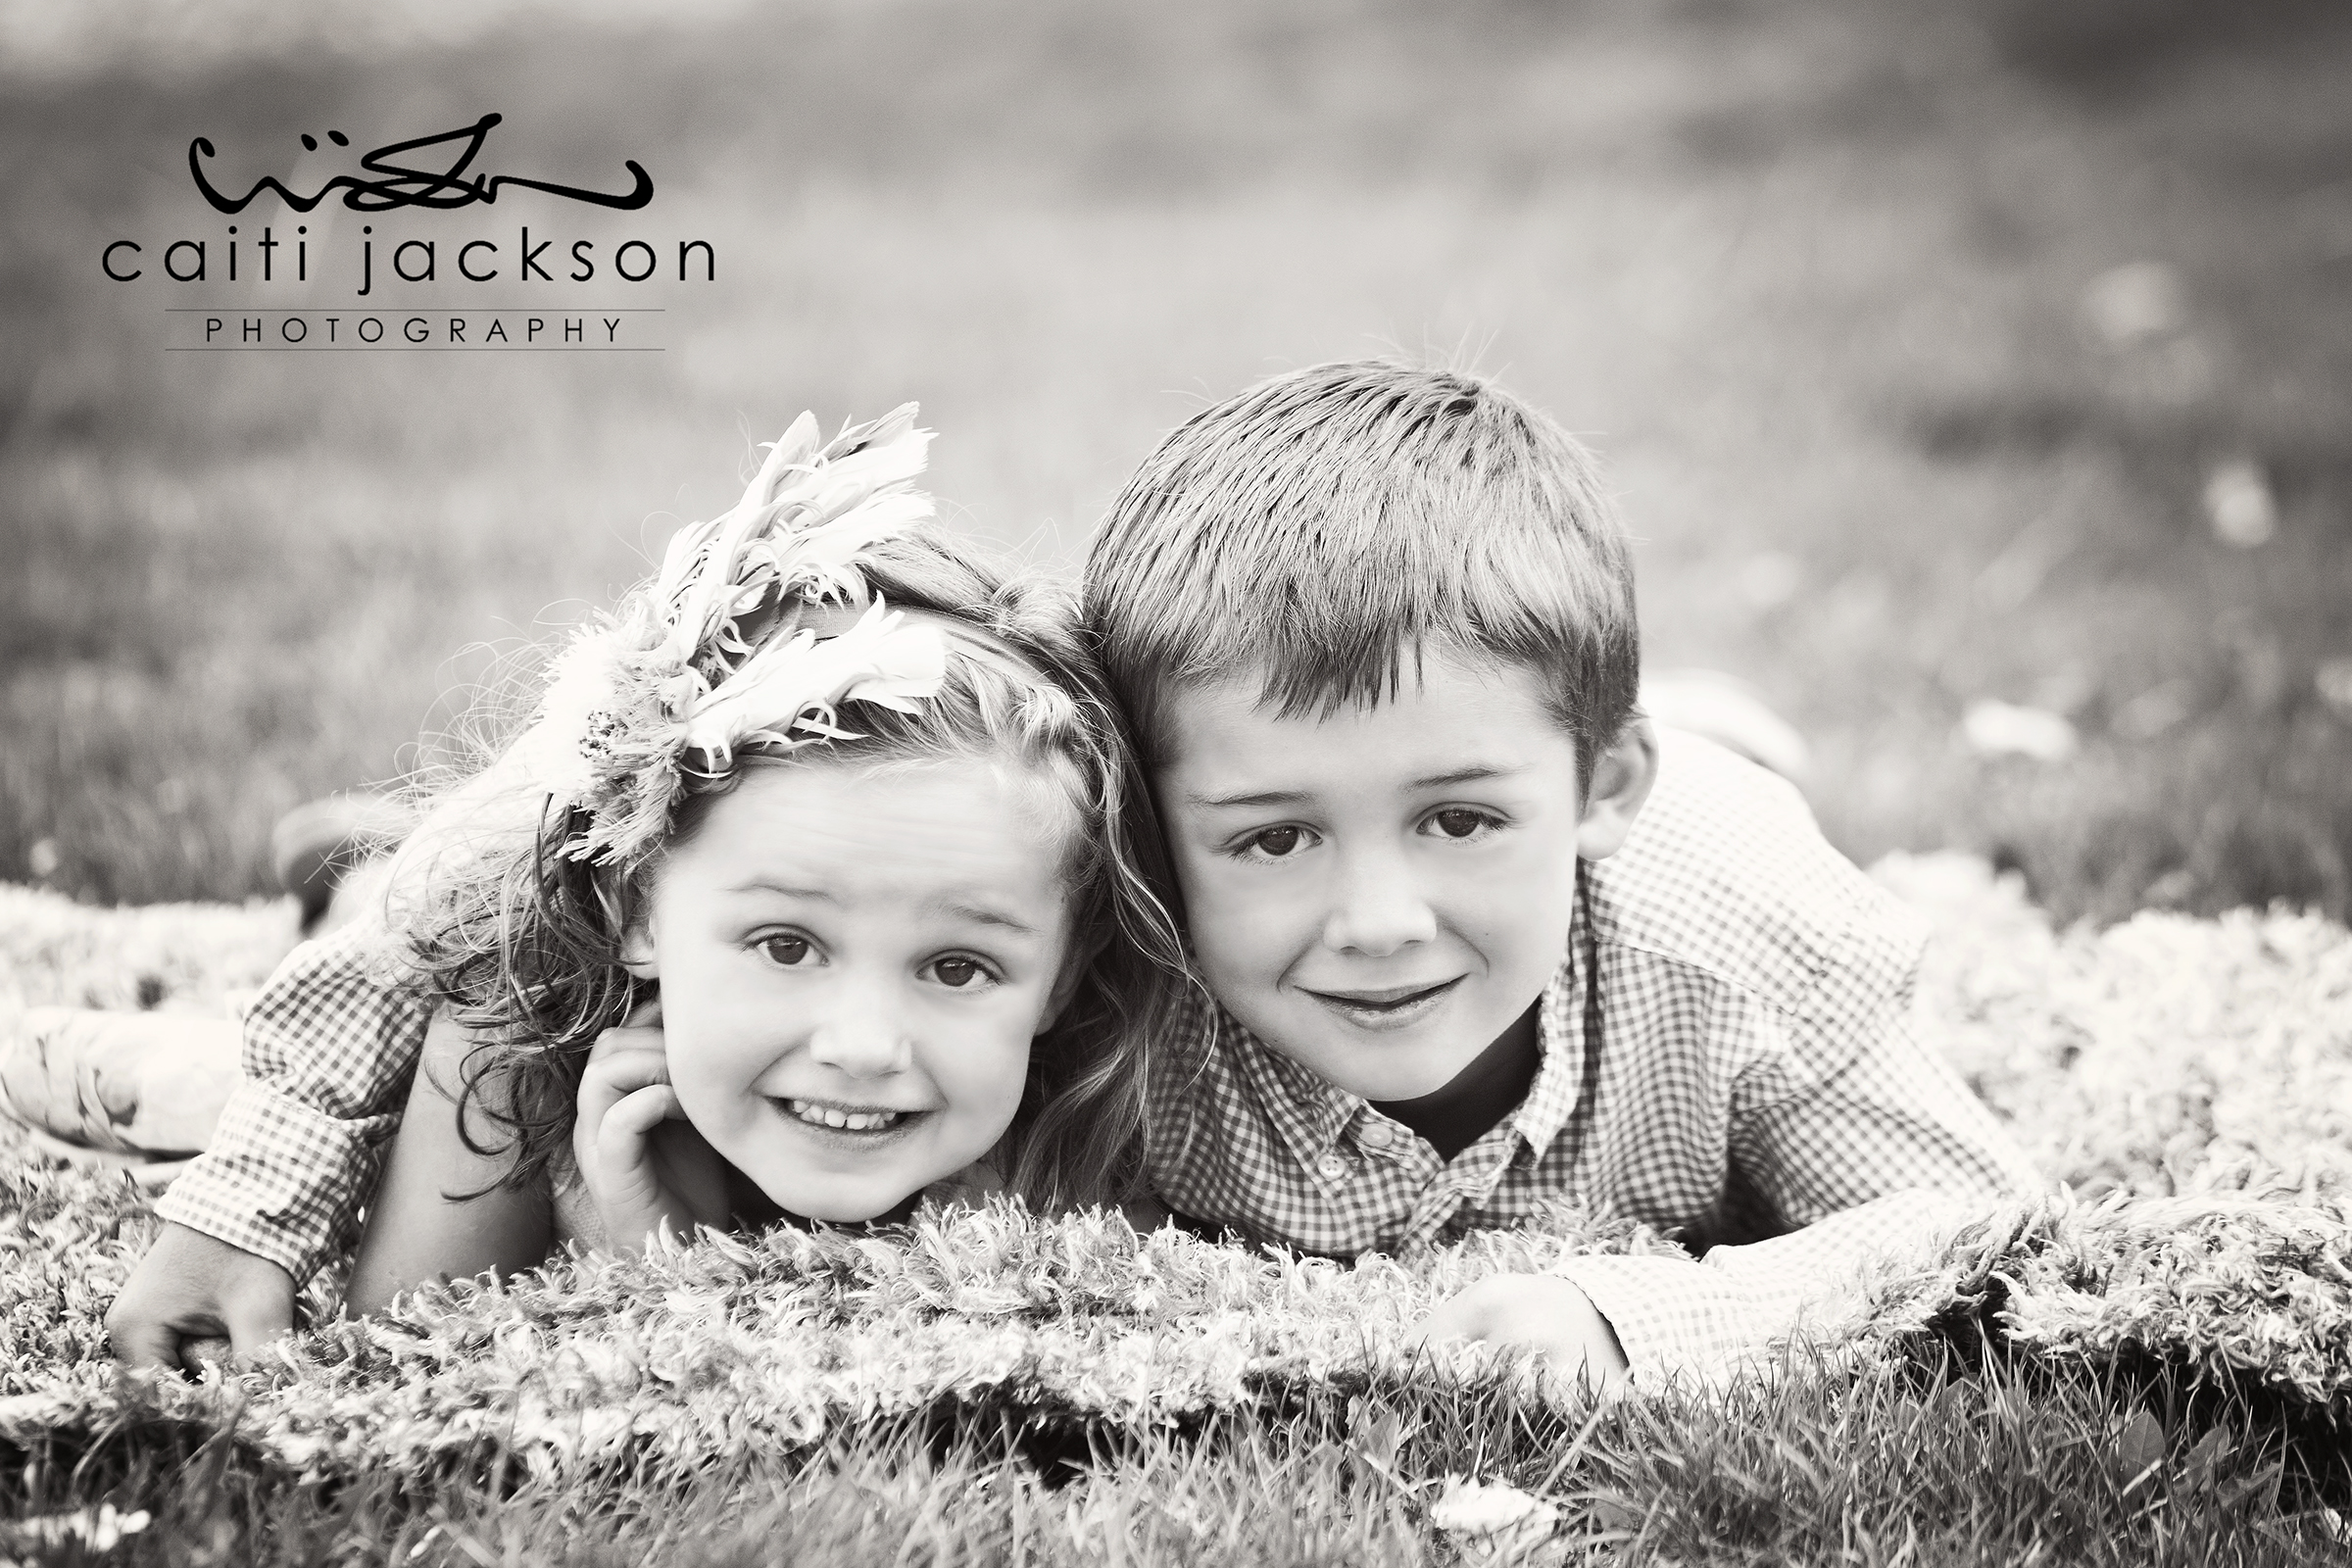 children photographer, children photography, child photographer, gillette wyoming, brother sister photo, caiti jackson photography